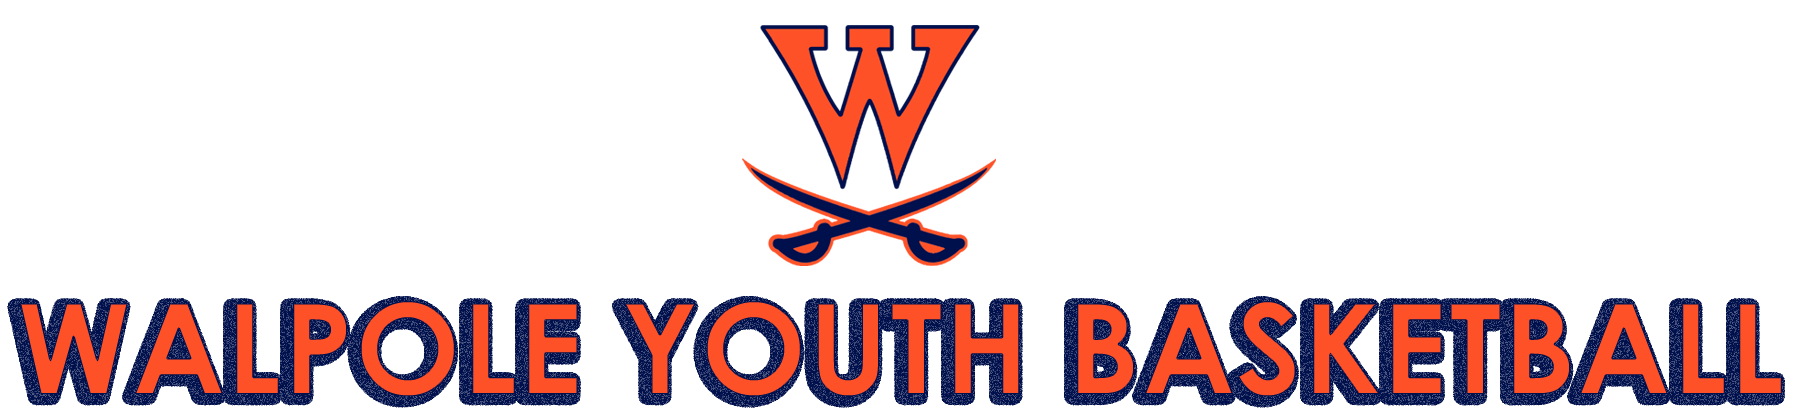 Walpole Youth Basketball Association, Basketball, Point, Court